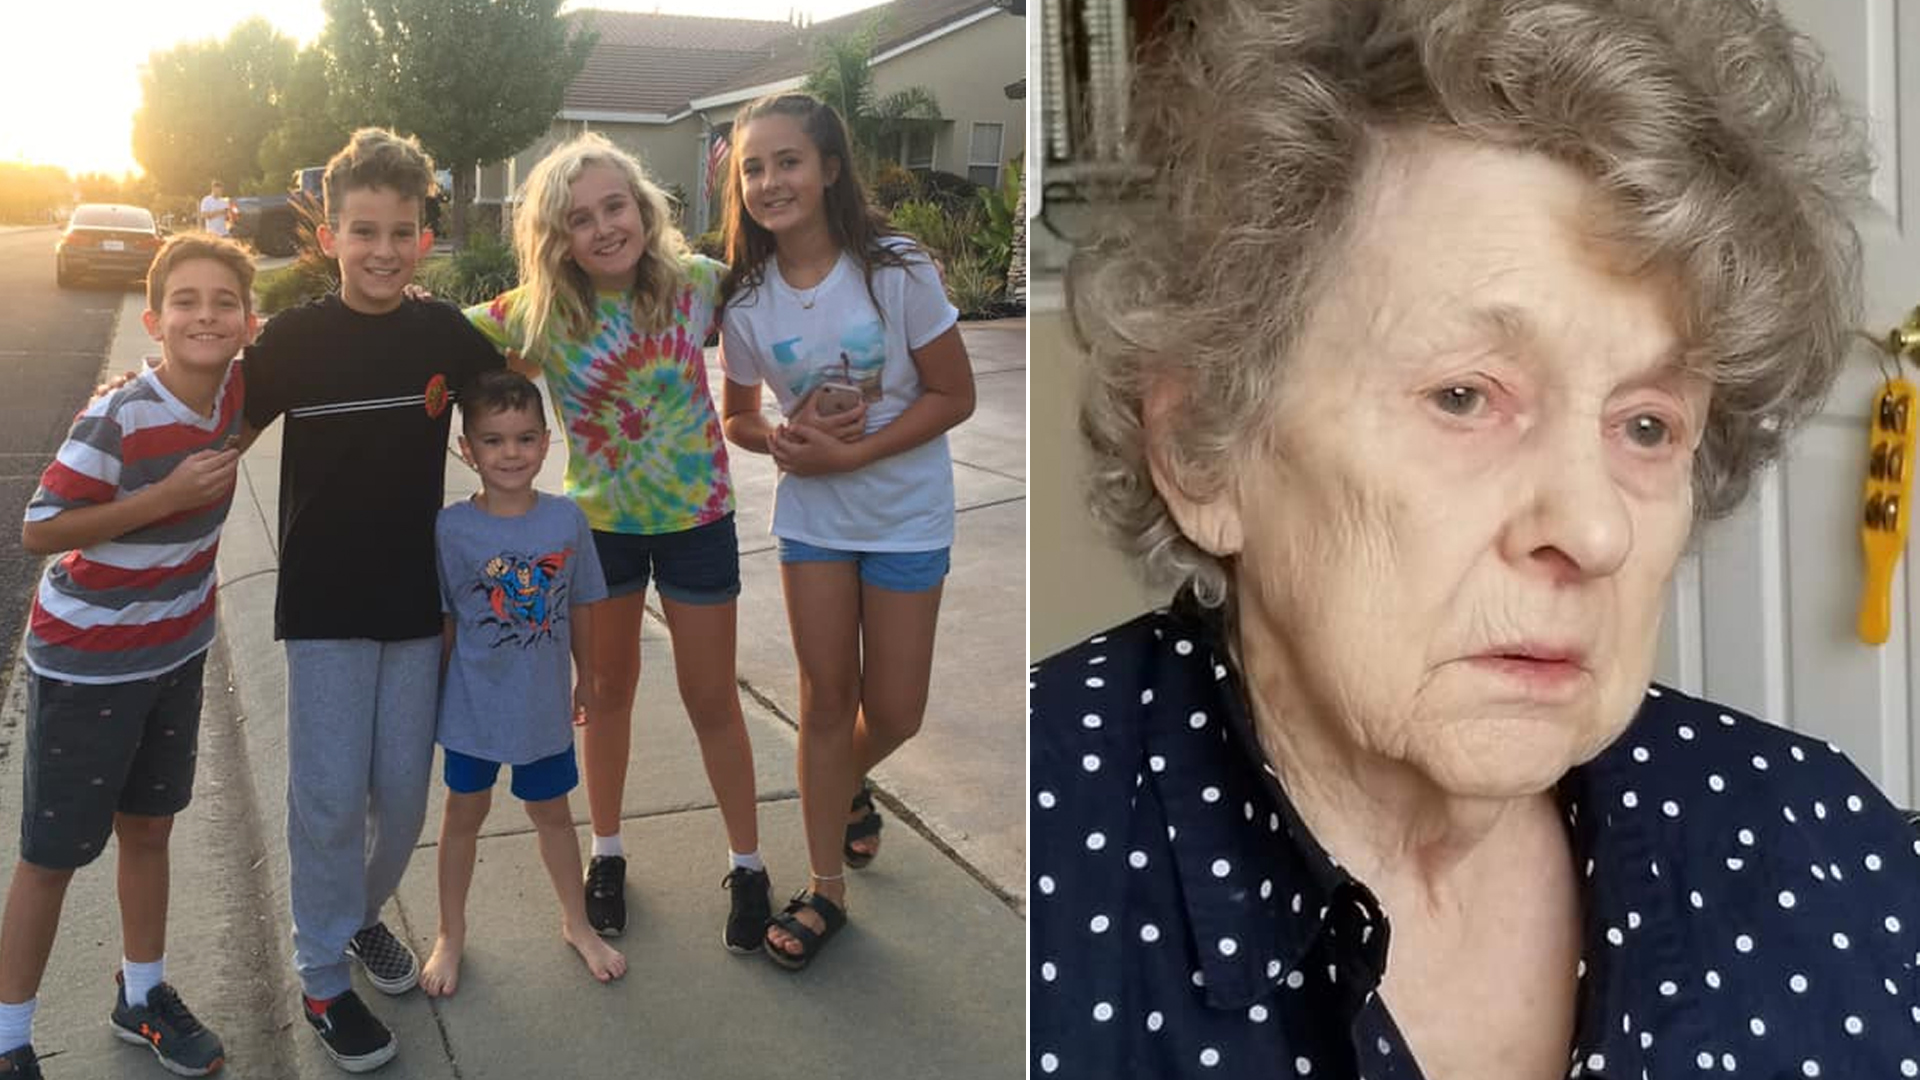 The group of Roseville children and Glenneta Belford, the woman they helped find, are seen in undated photos provided by the City of Roseville Police Department.